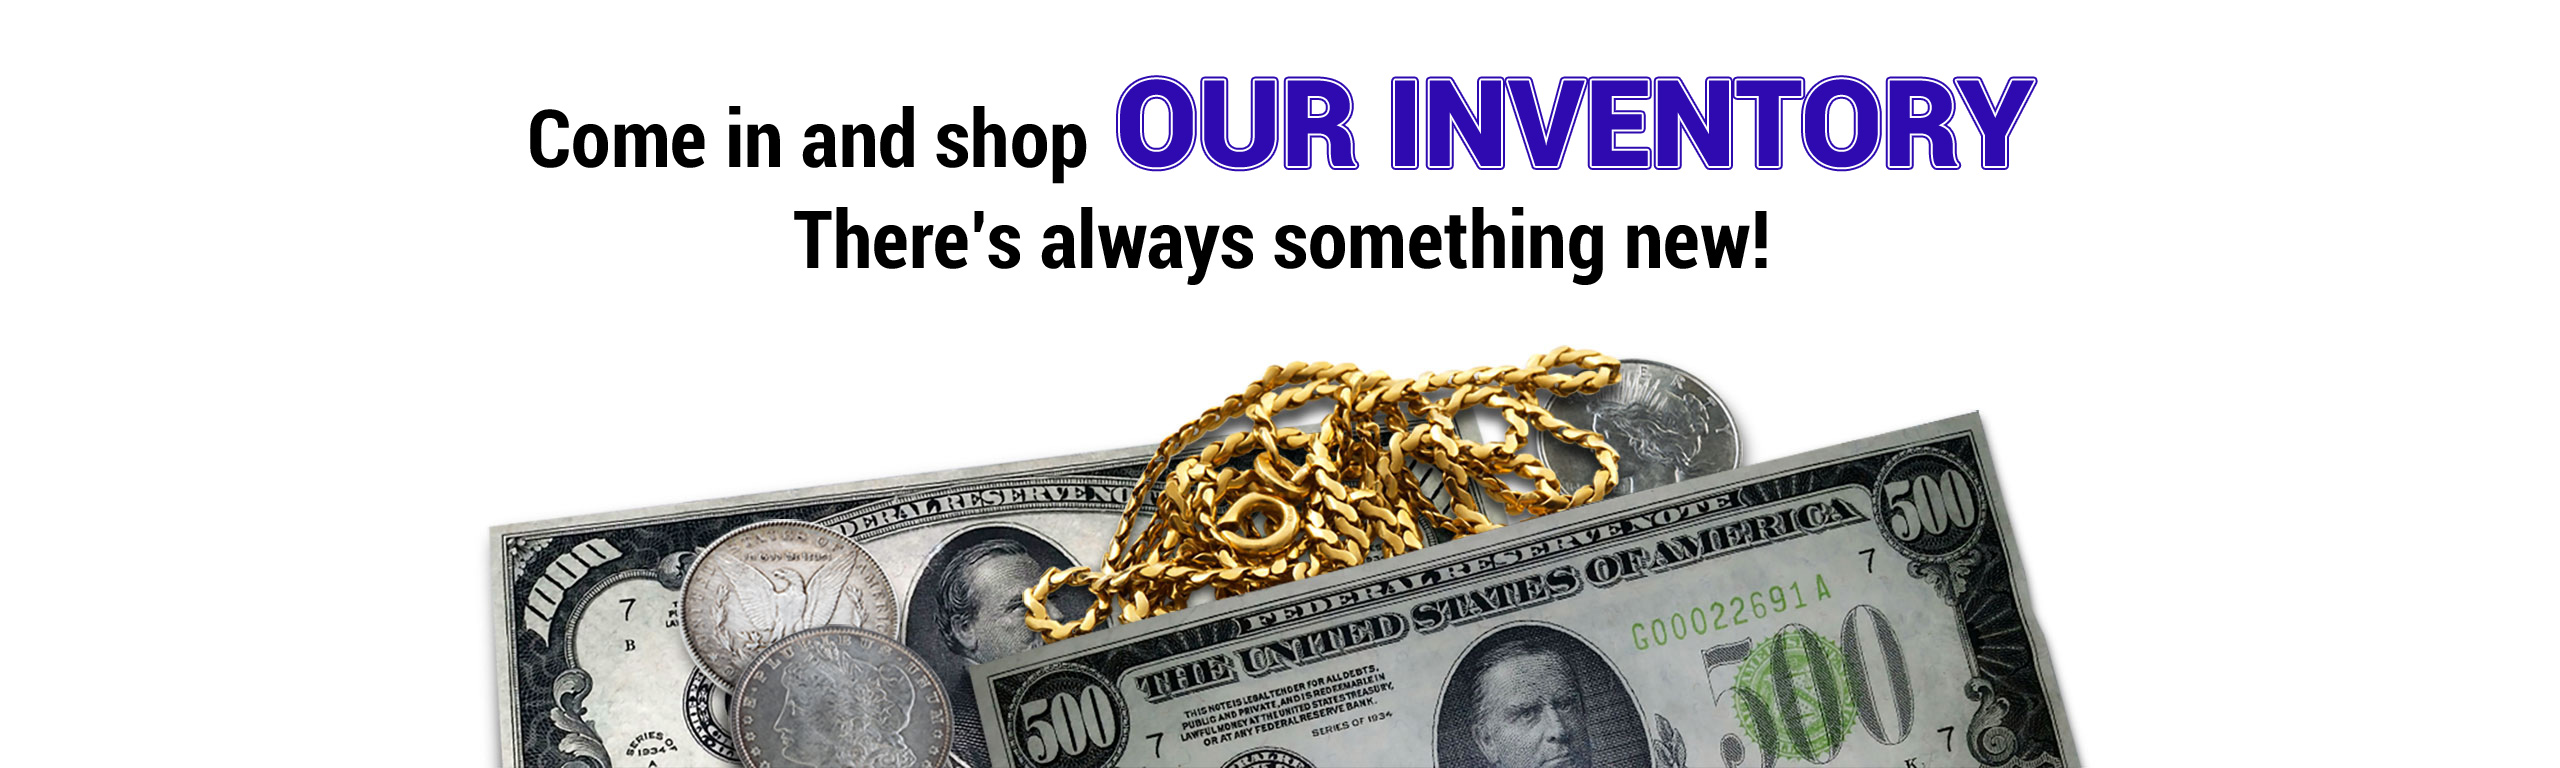 Come in and Shop Our Inventory